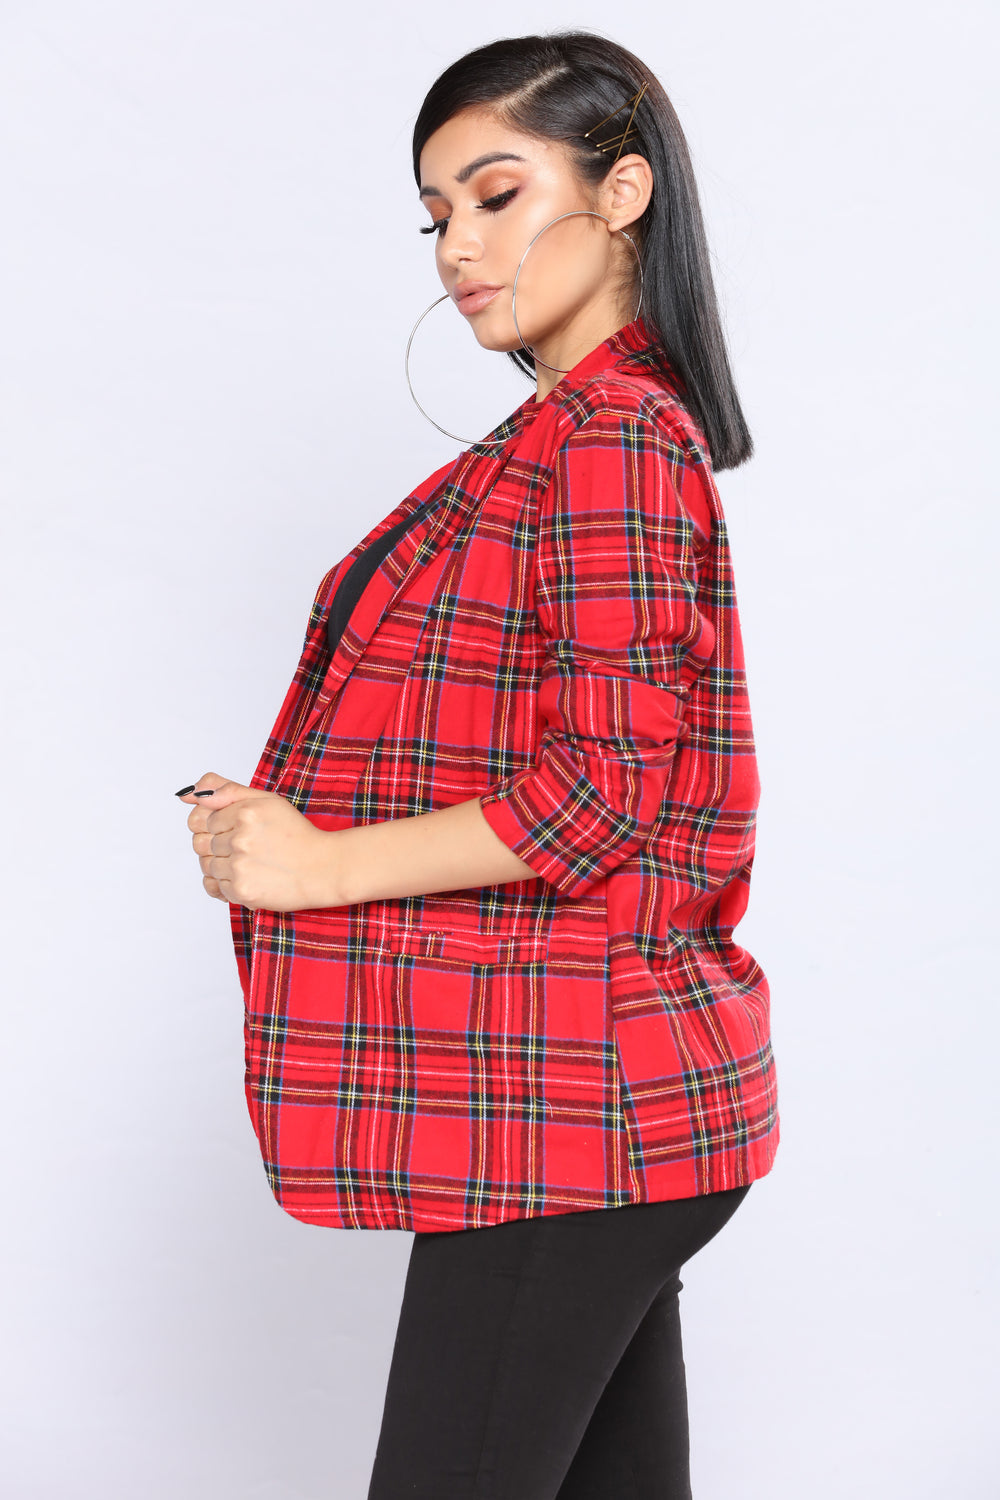 Smart Aleck Plaid Jacket - Red